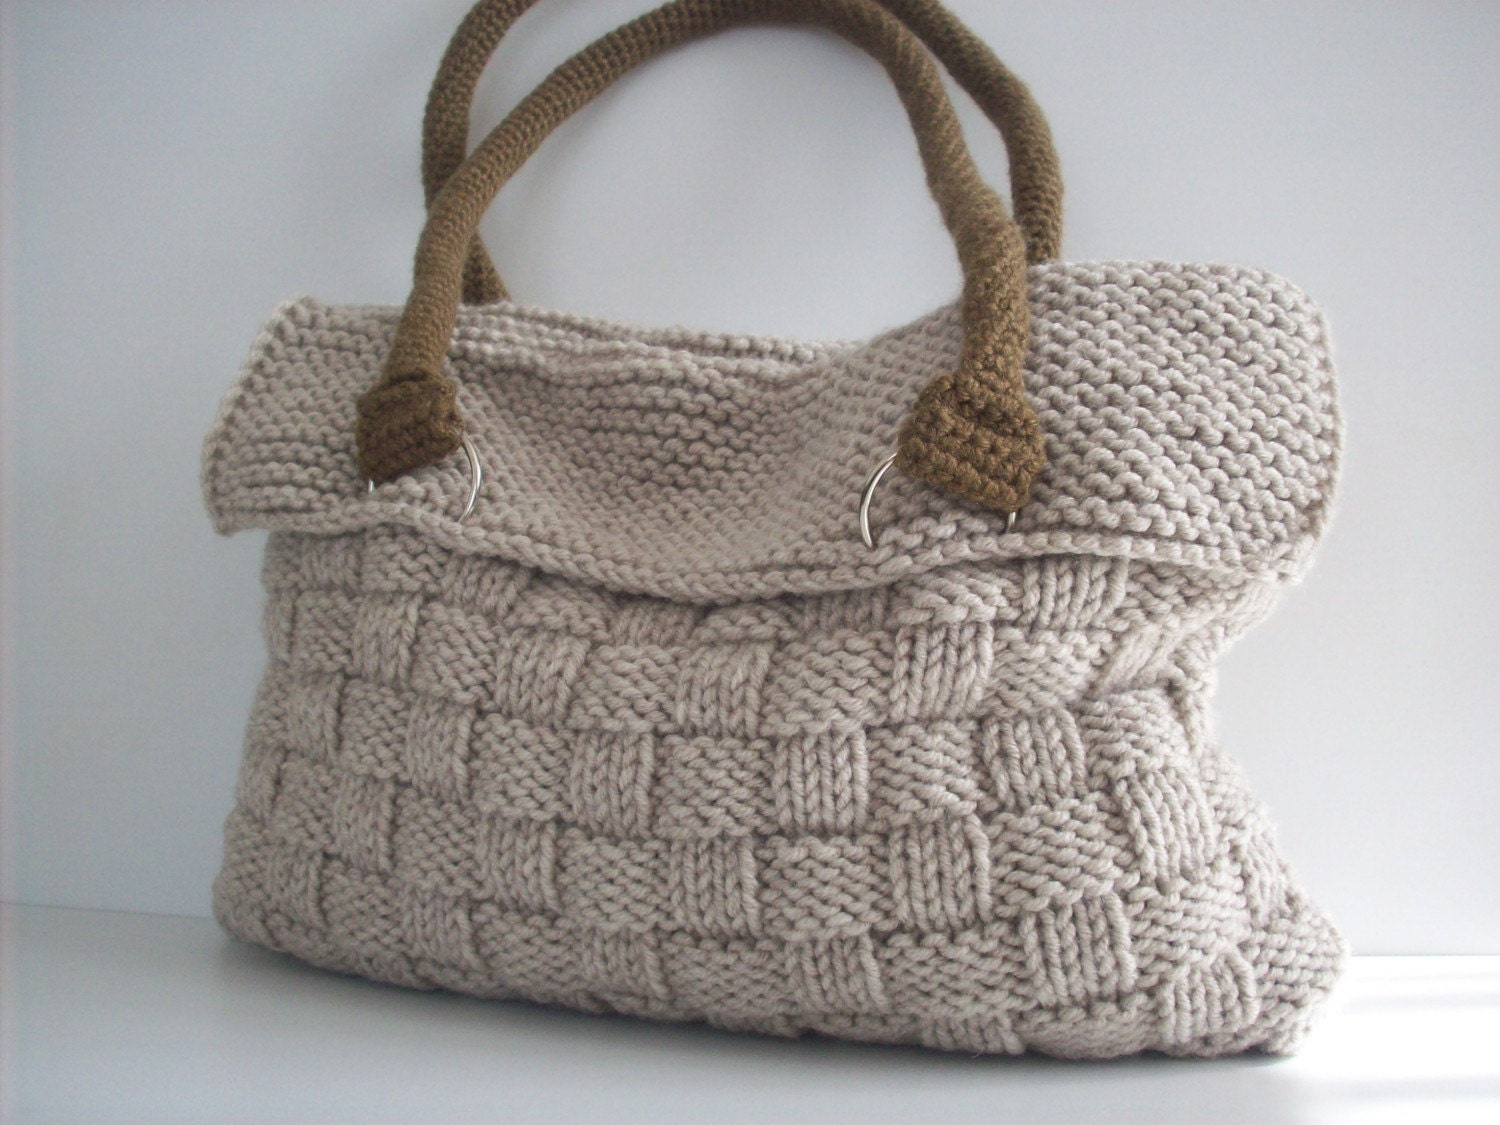 NzLbags NEW Everyday Knitted Bag, Shoulder Bag, Handbag - Beige Nr - 075